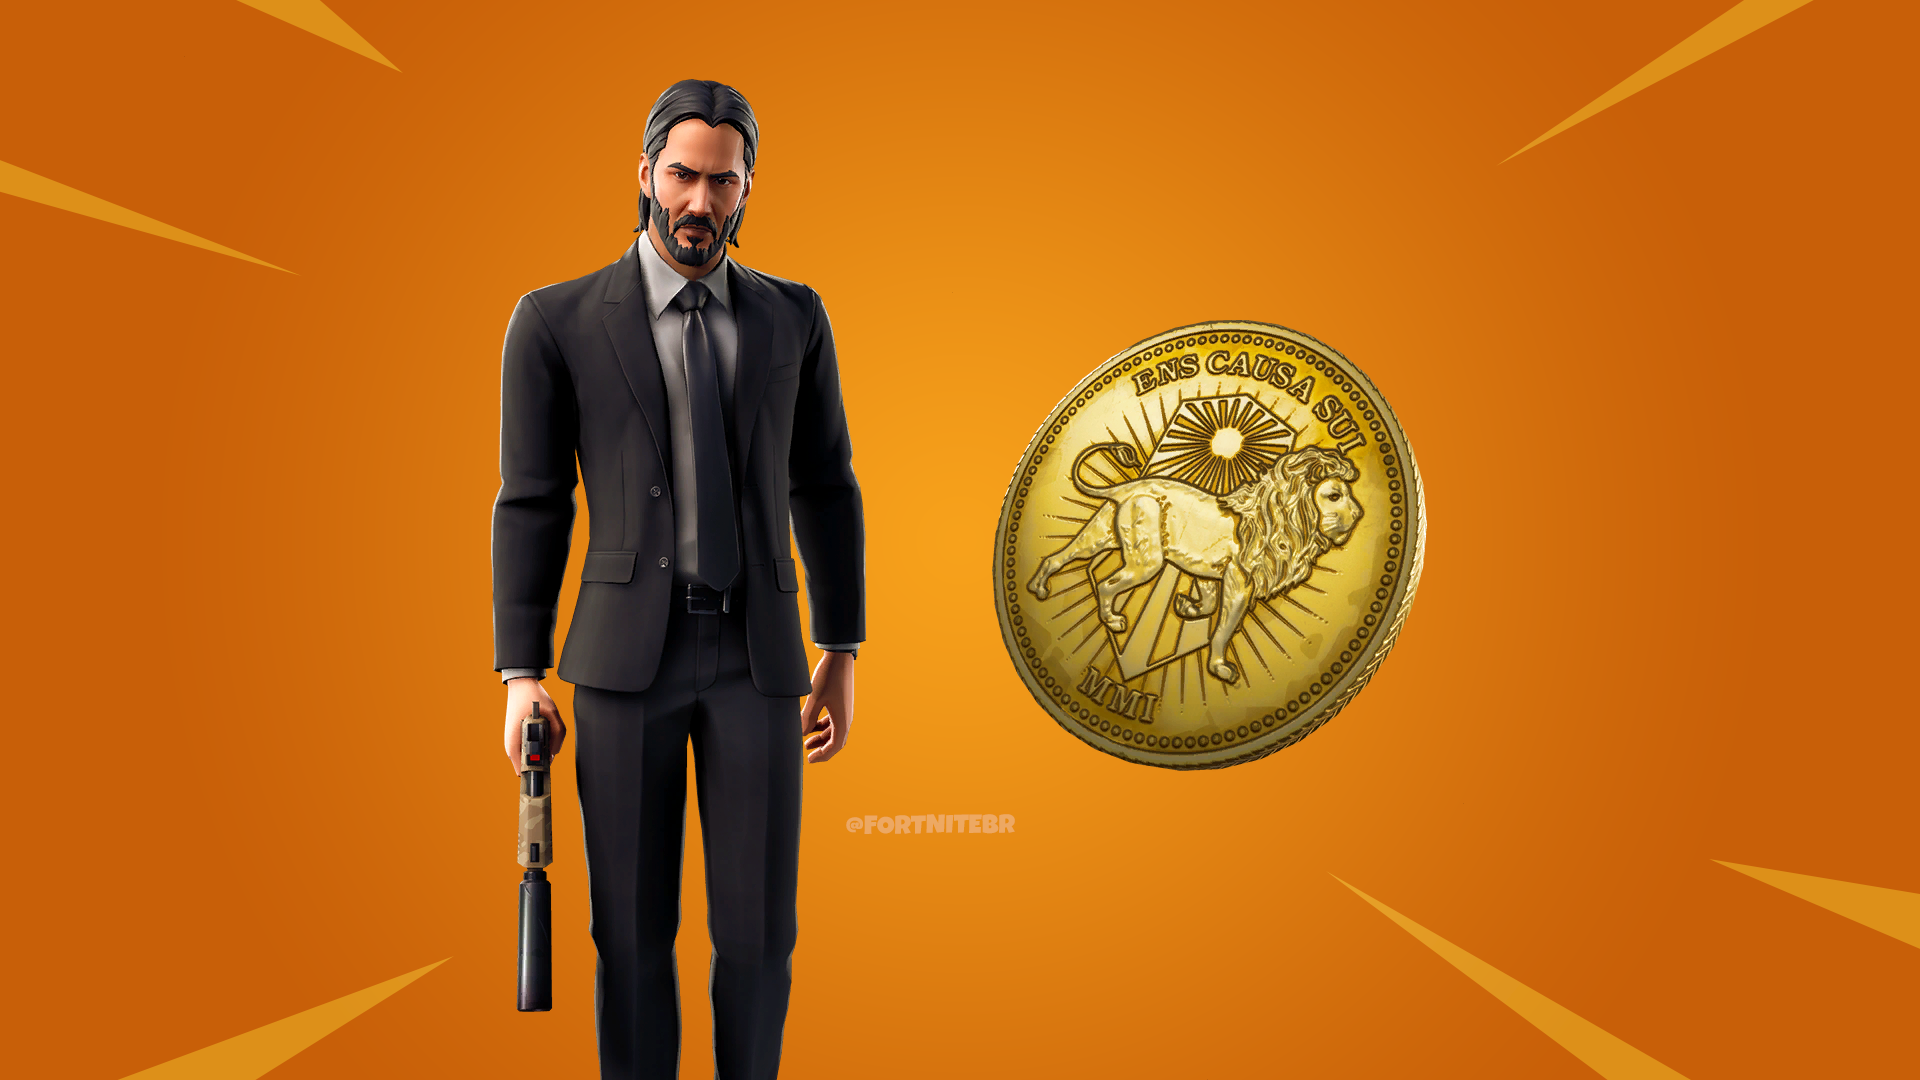 Leak reveals that John Wick is coming to Fortnite in upcoming update